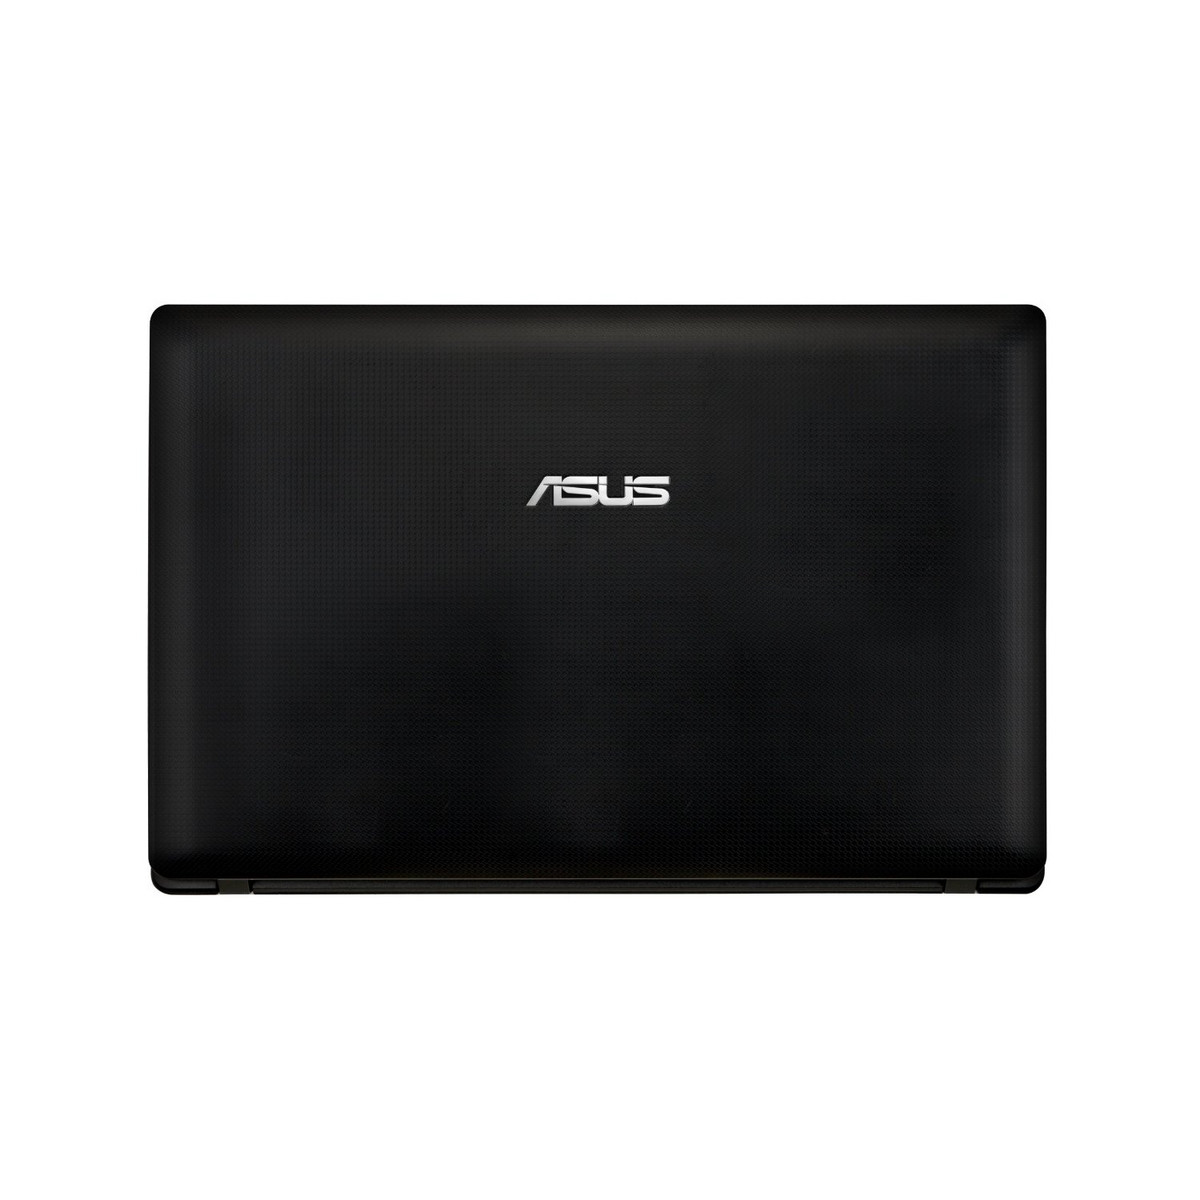 DRIVER FOR ASUS X54H NOTEBOOK TURBO BOOST MONITOR